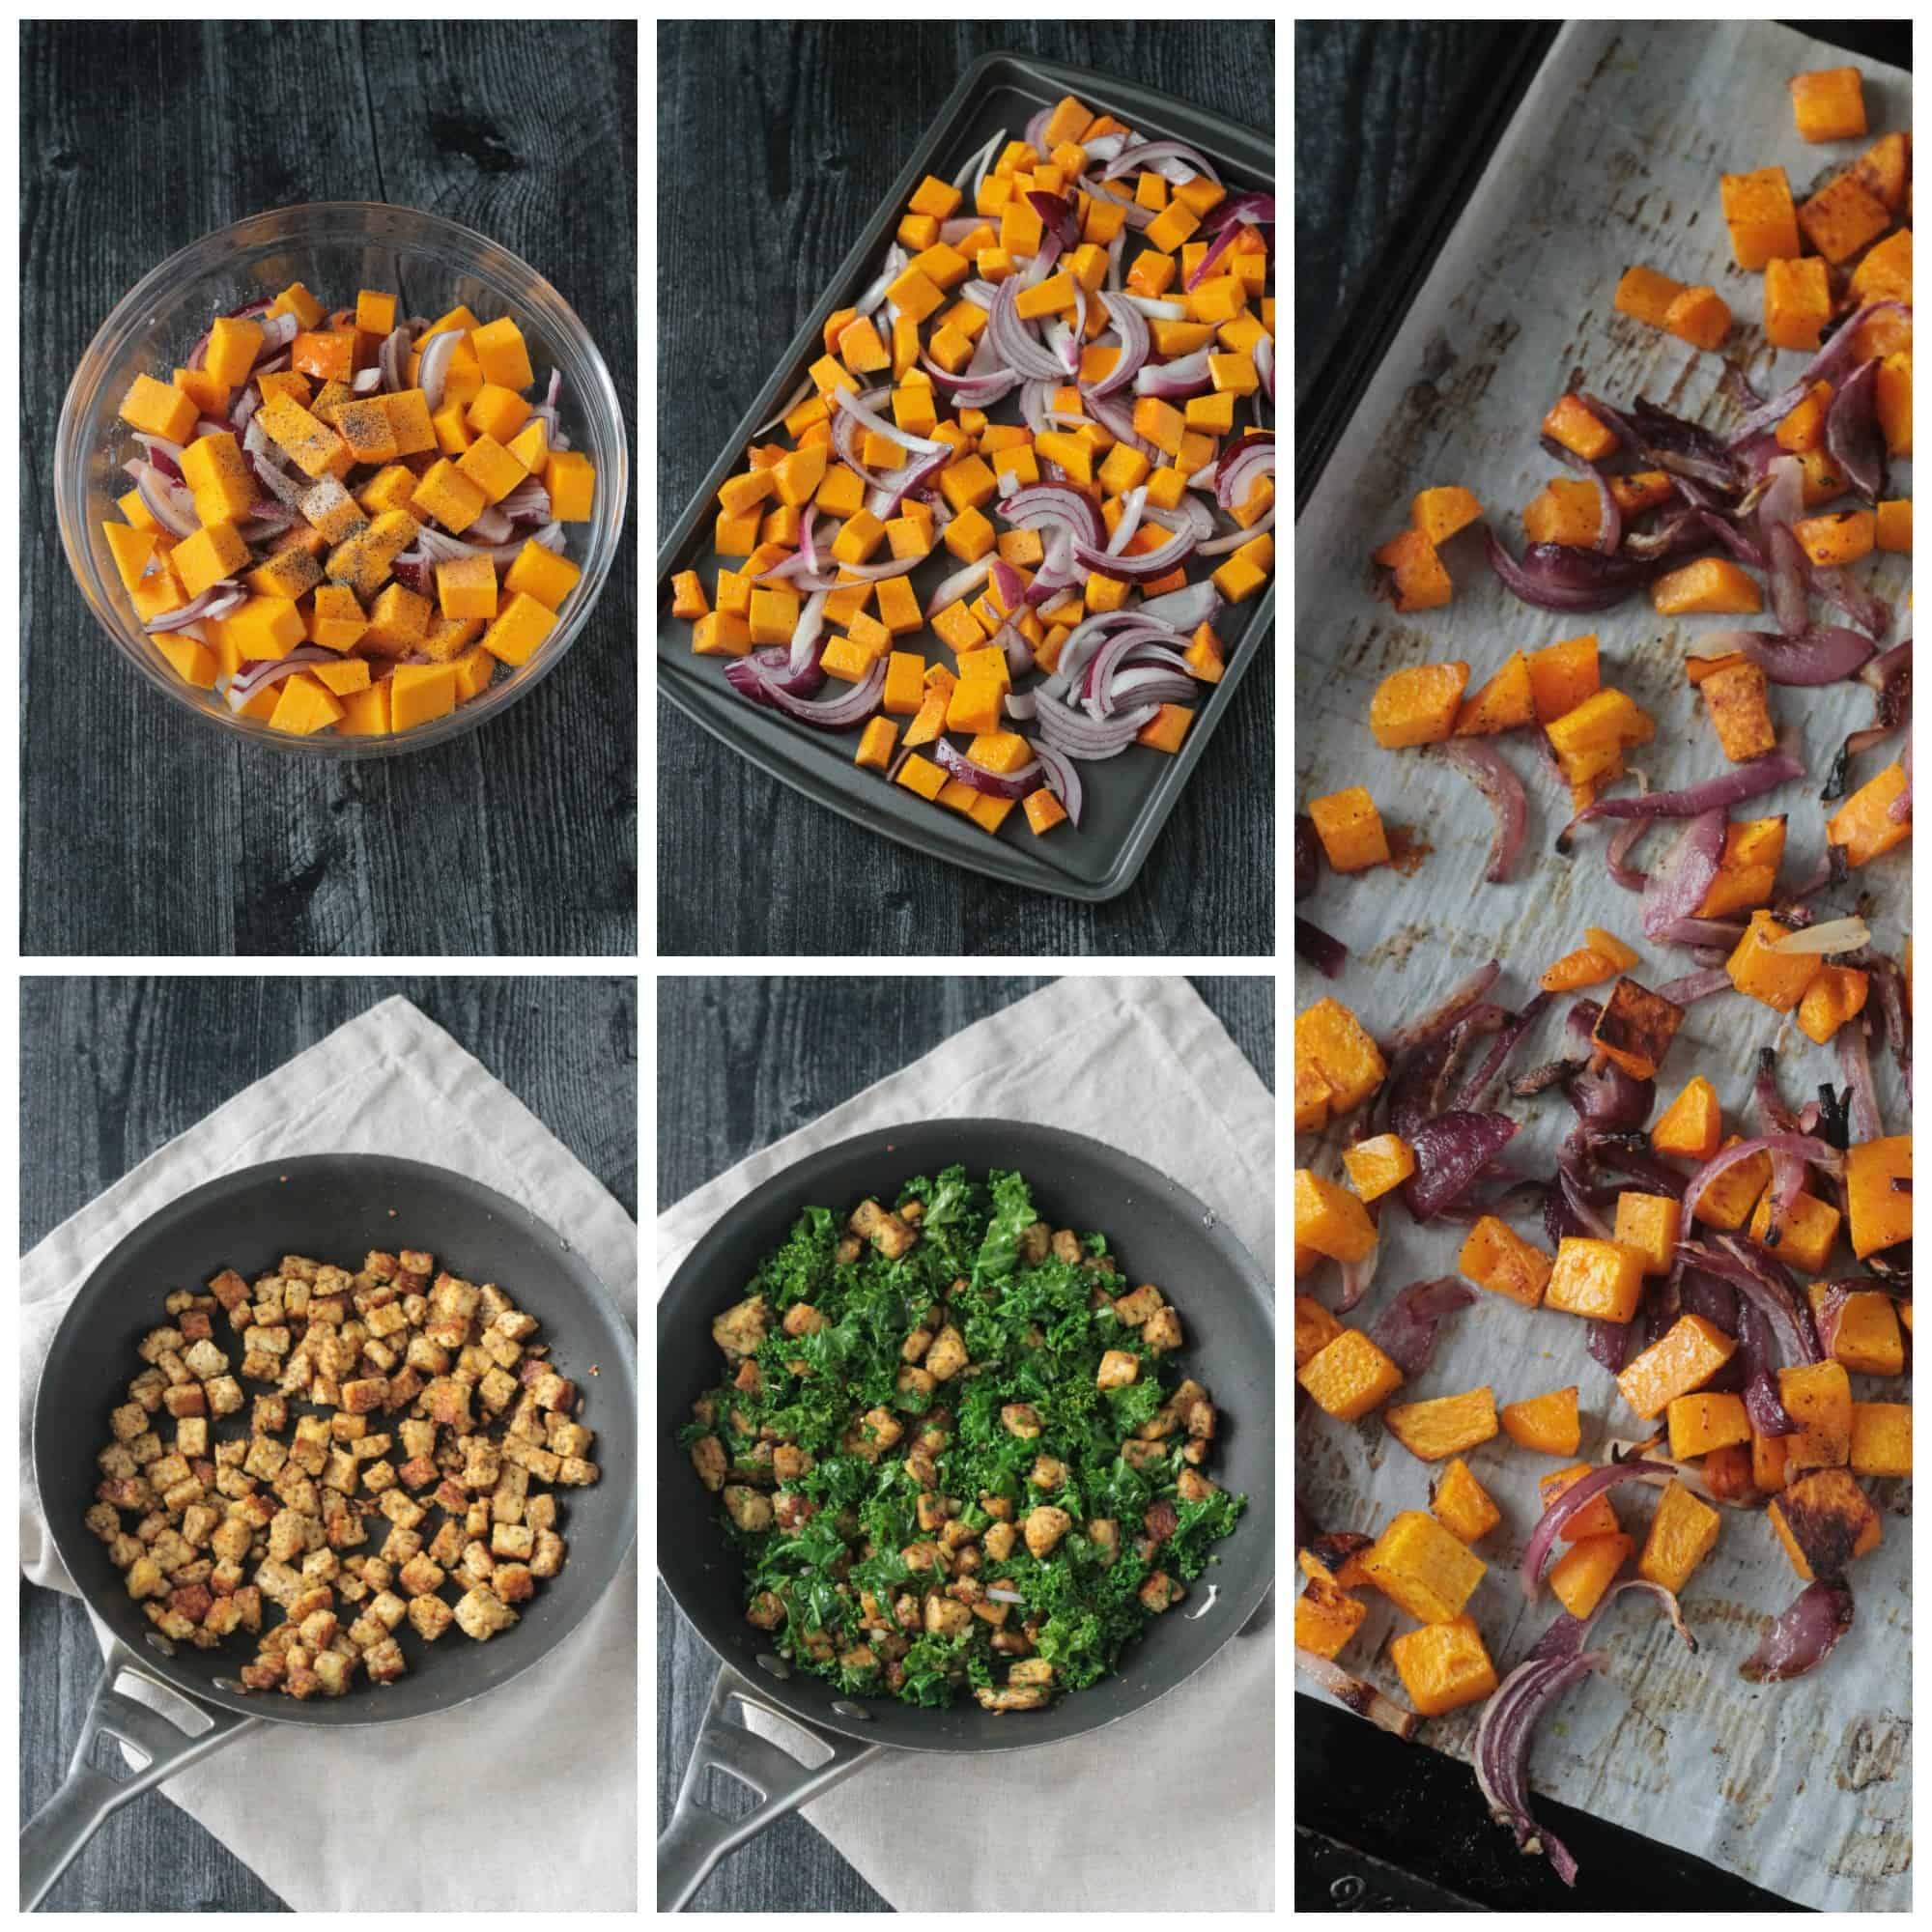 Step by step photo collage showing how to make Fall Roasted Vegetable Pasta recipe